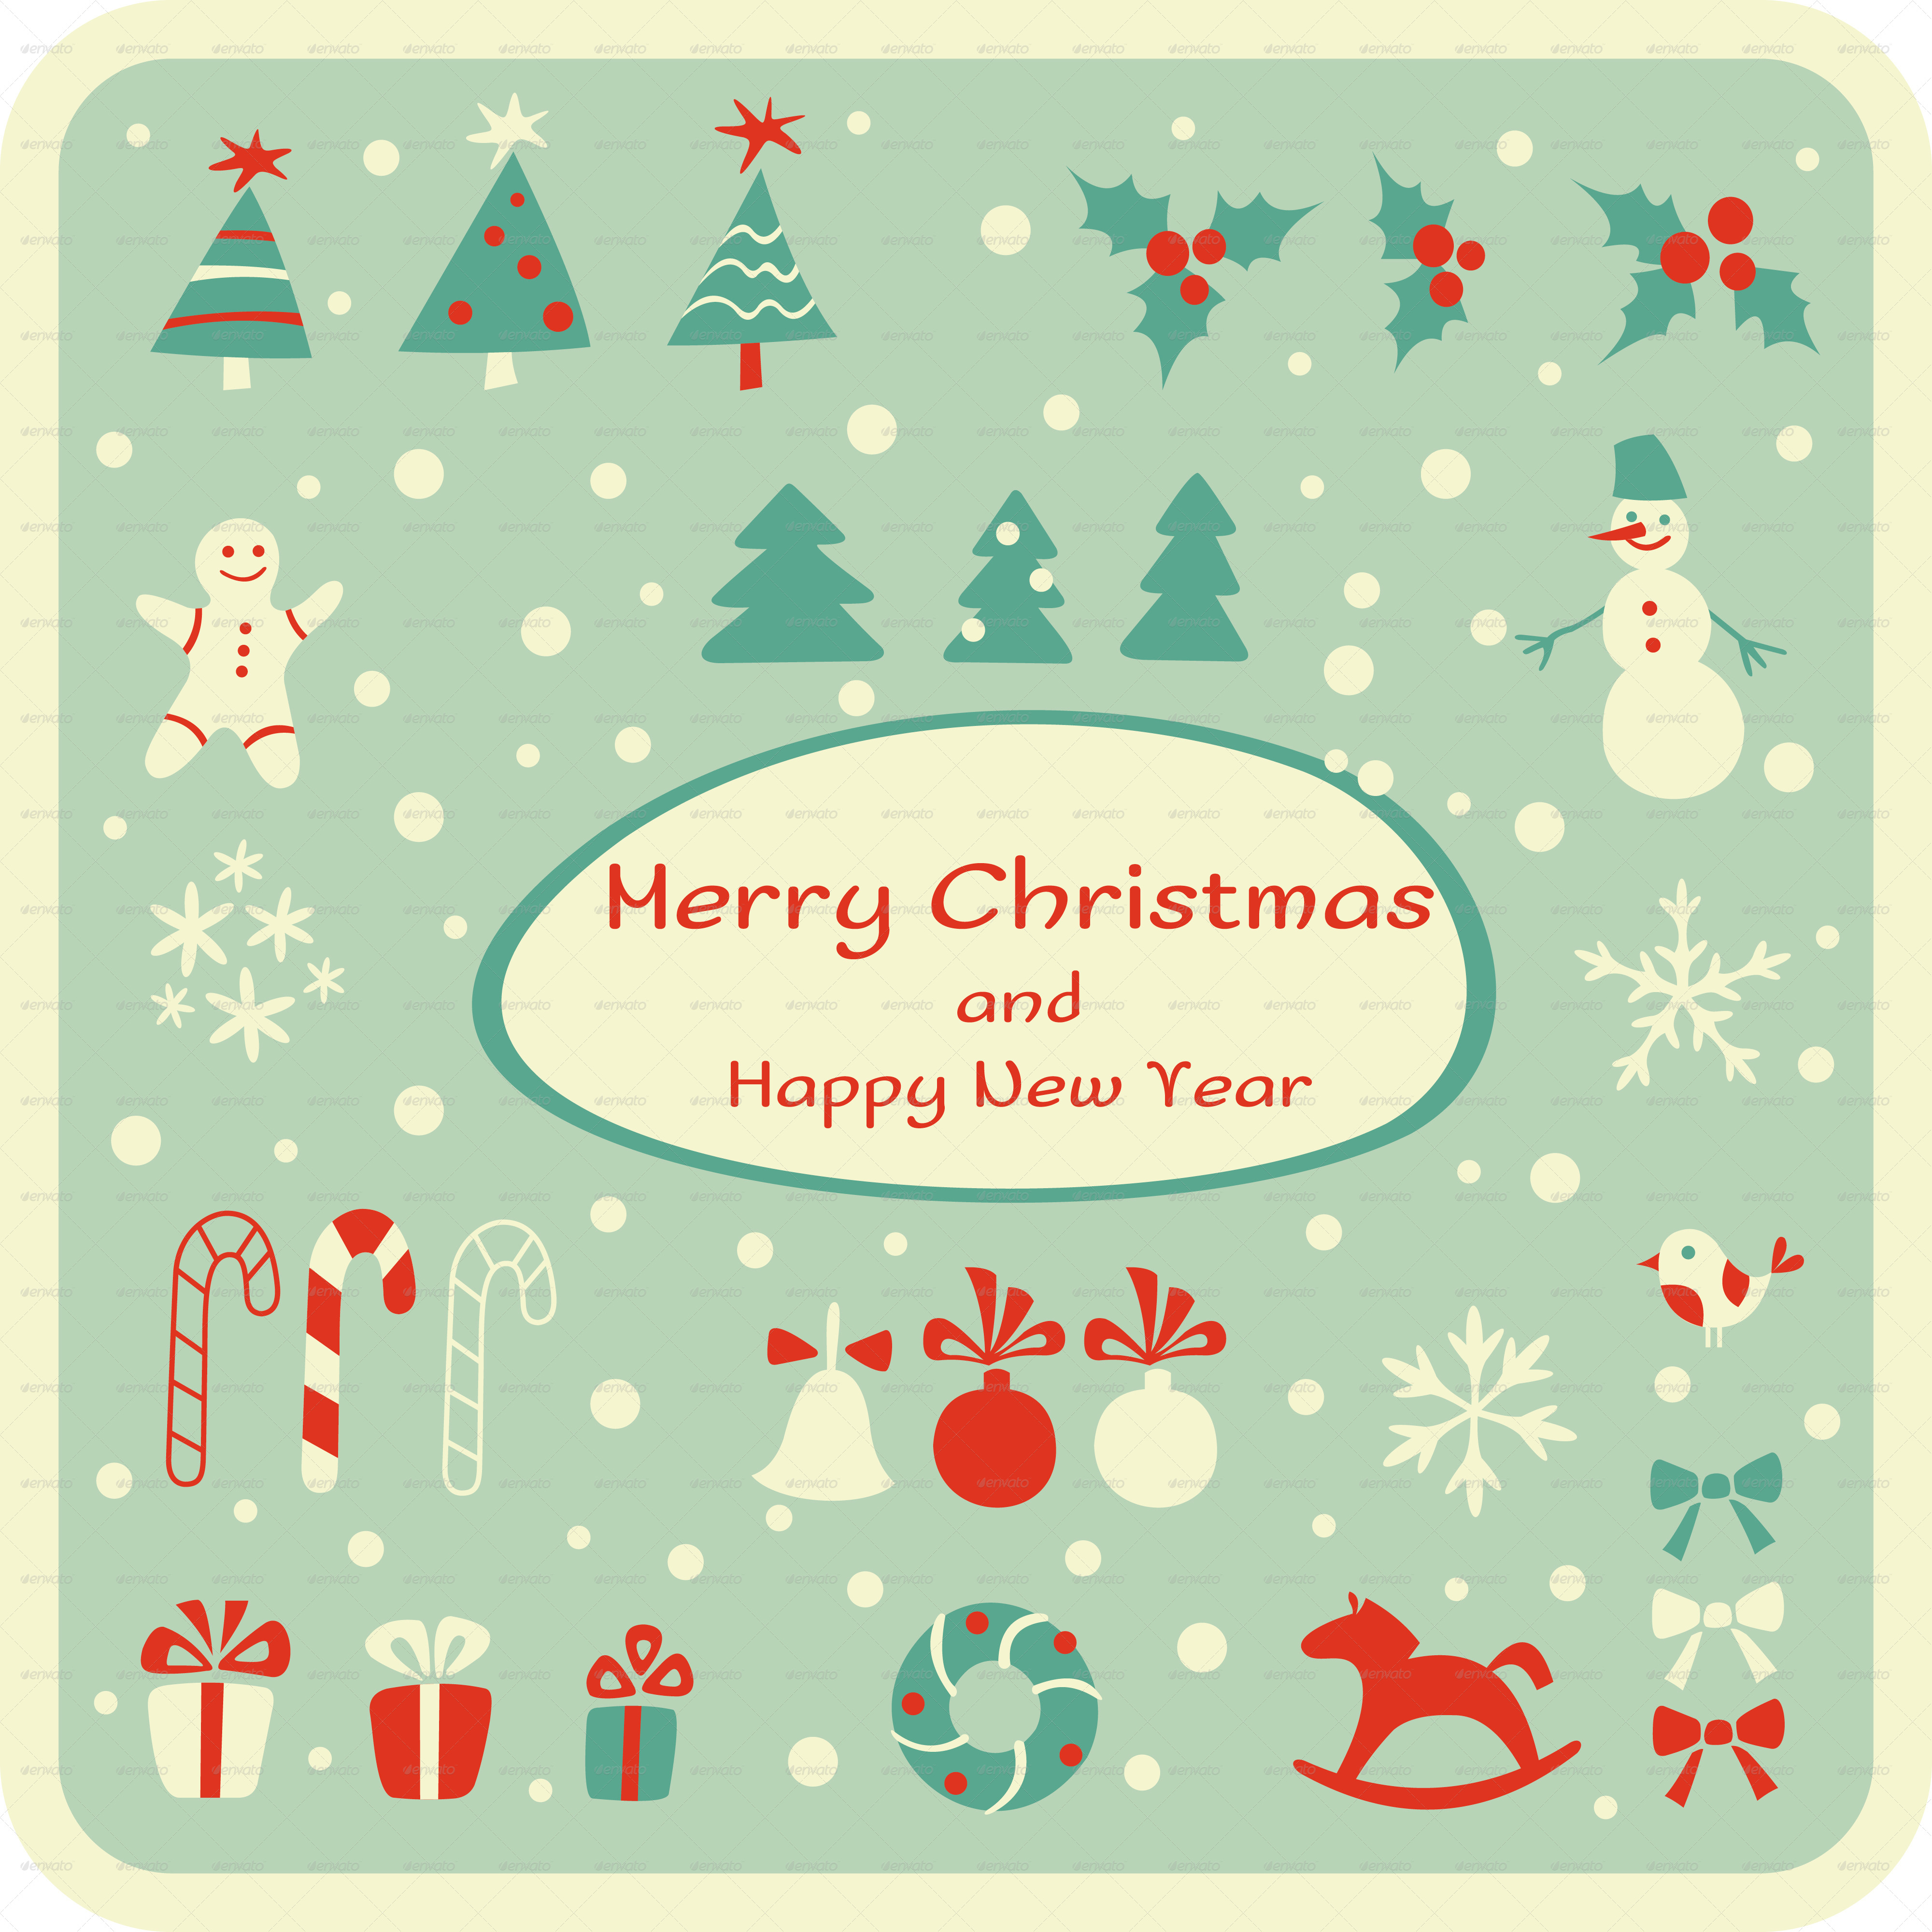 Set Of Christmas Design Elements And Cards By 7romawka7